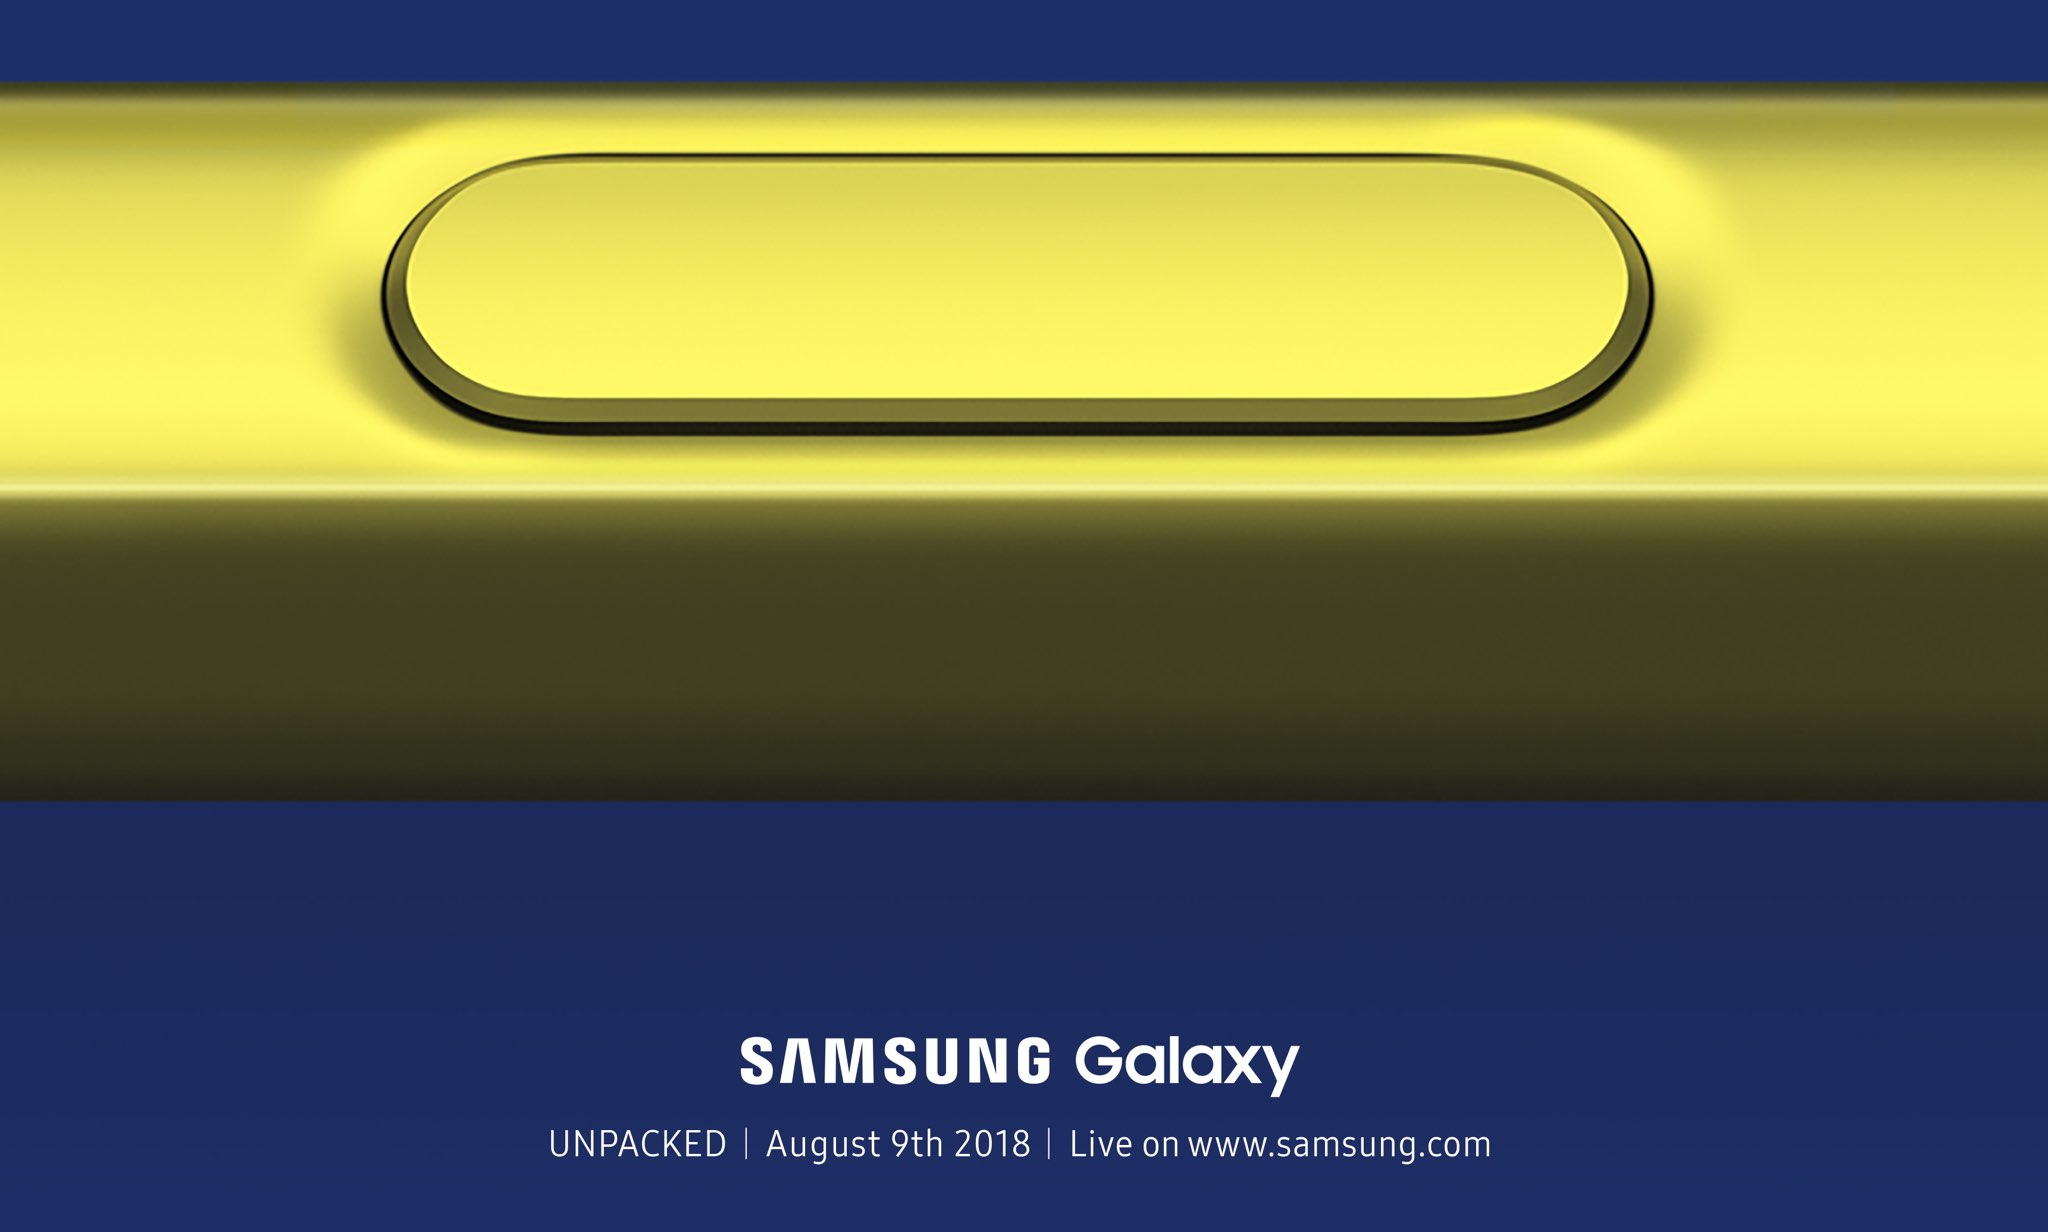 Samsung's invitation for the August 9 event